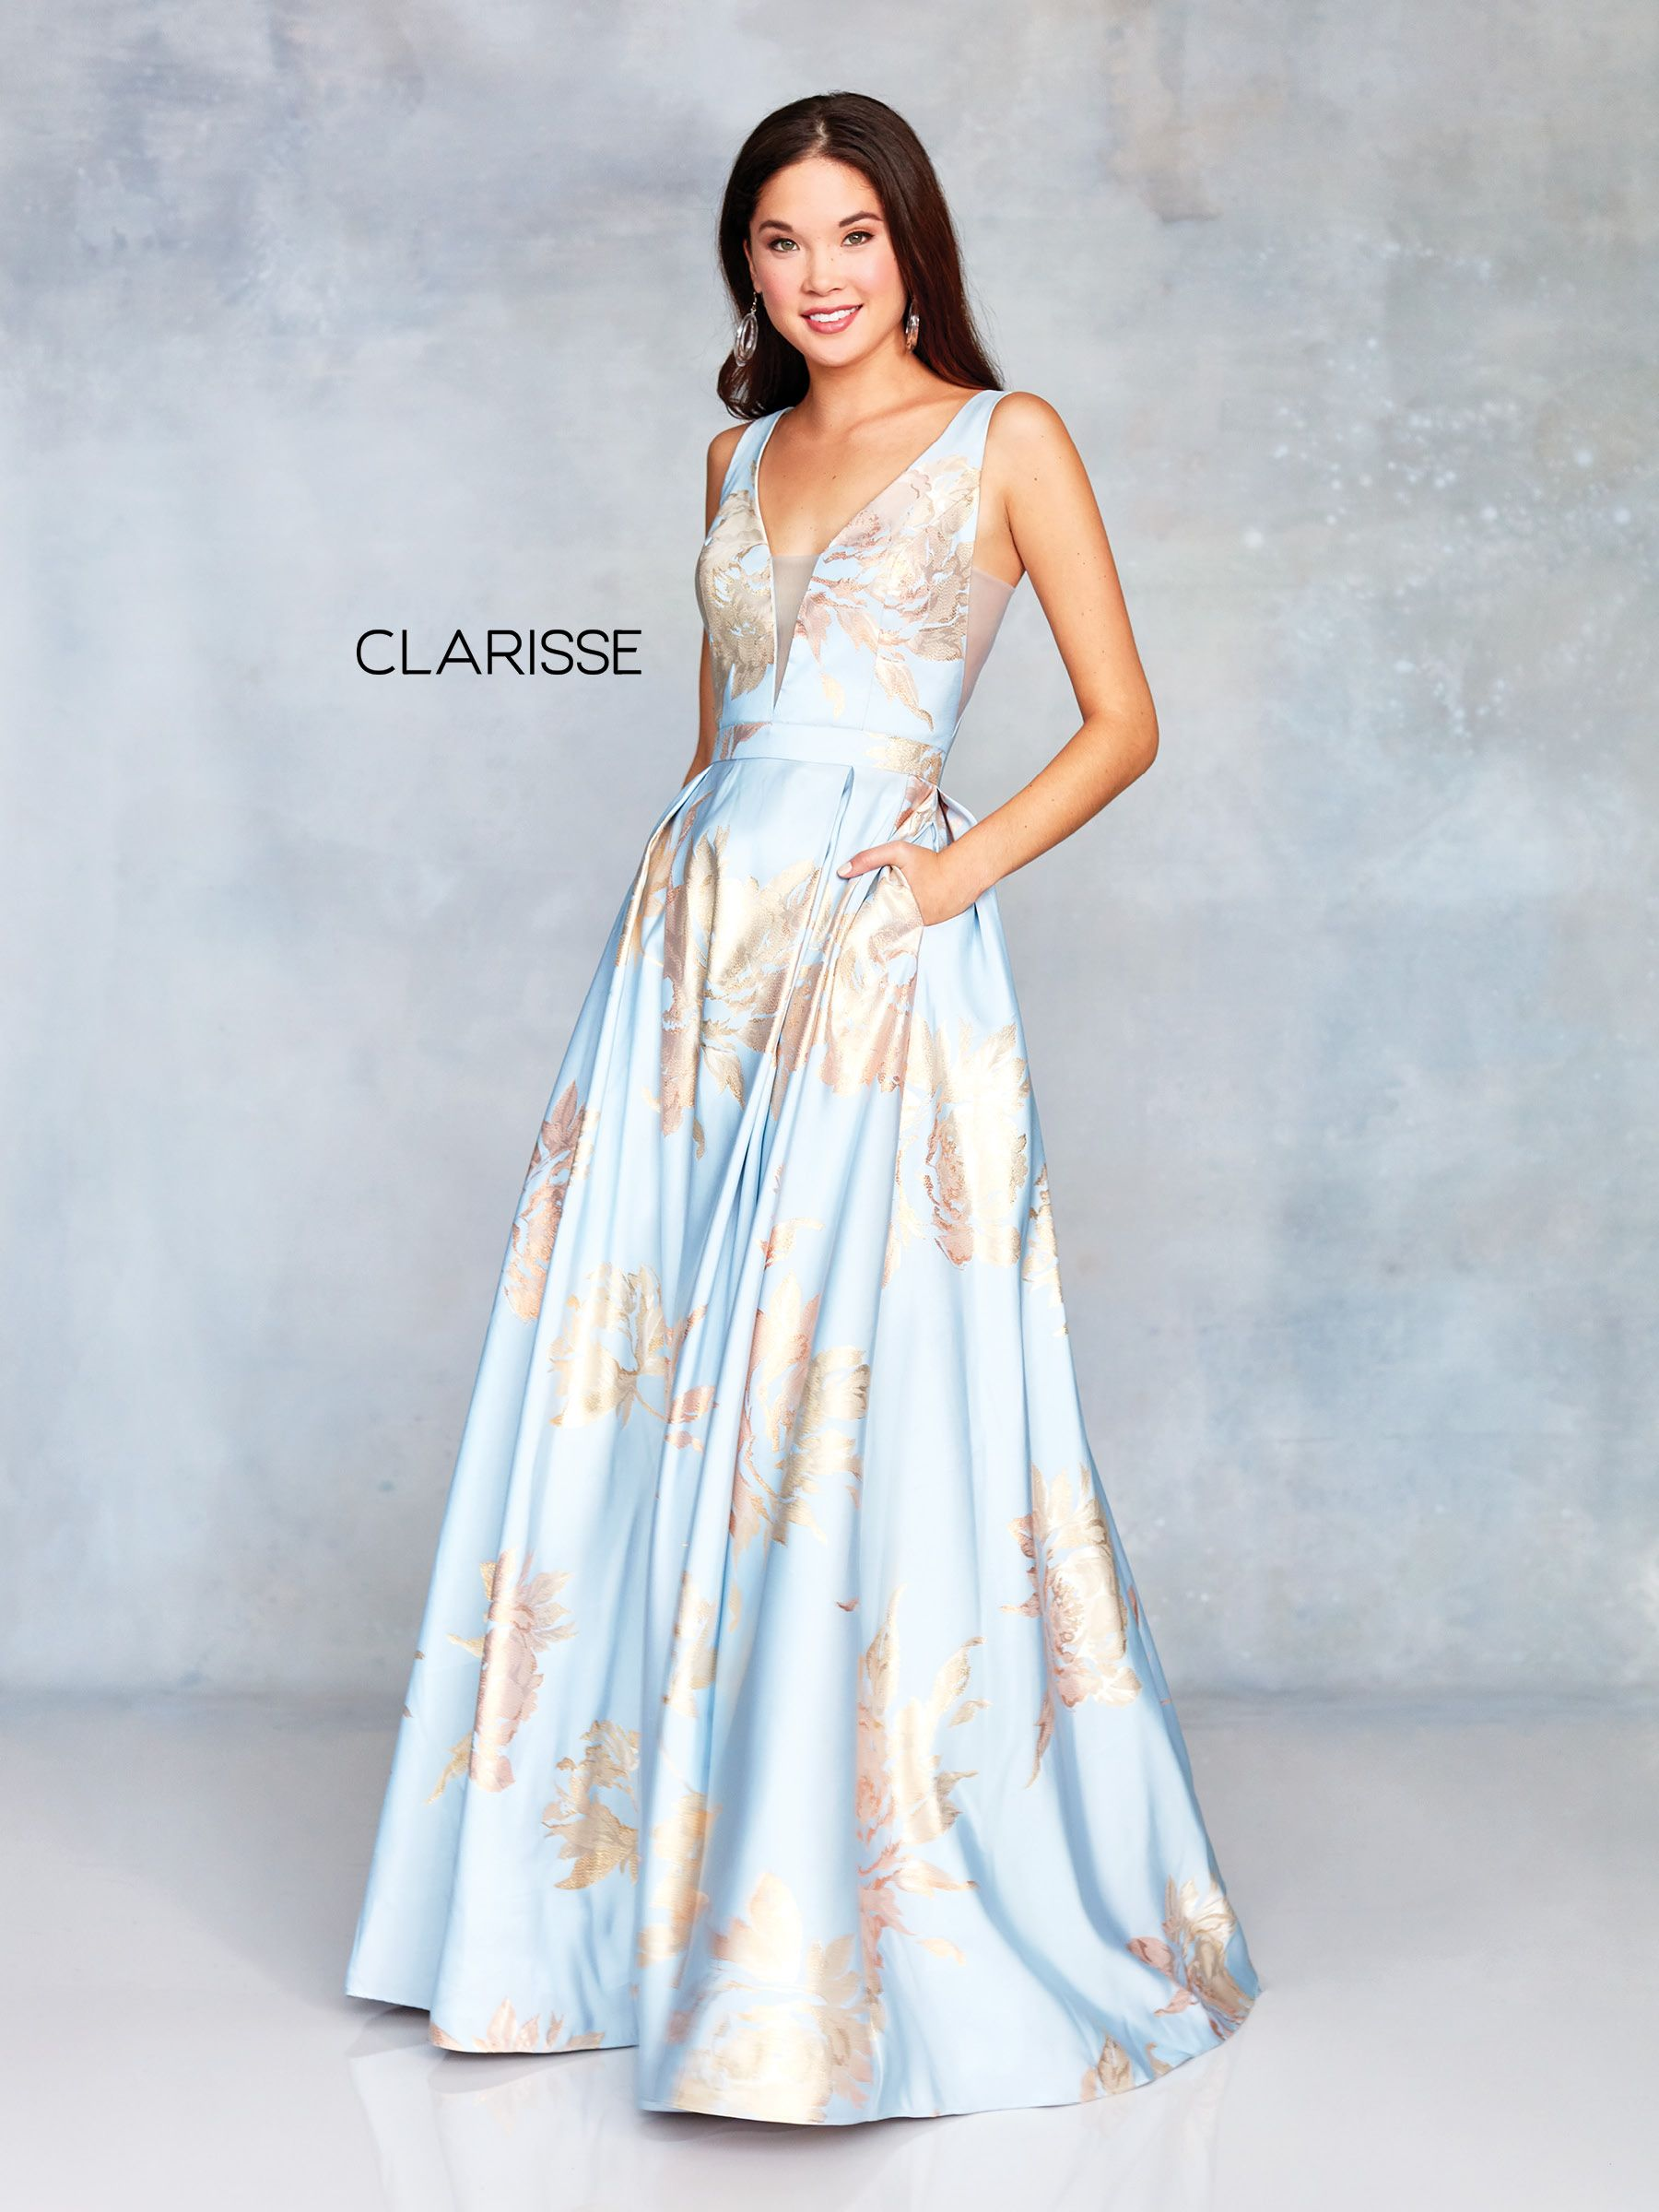 e06df8de59d 3703 - Light blue and gold floral patterned brocade ball gown with an open  back